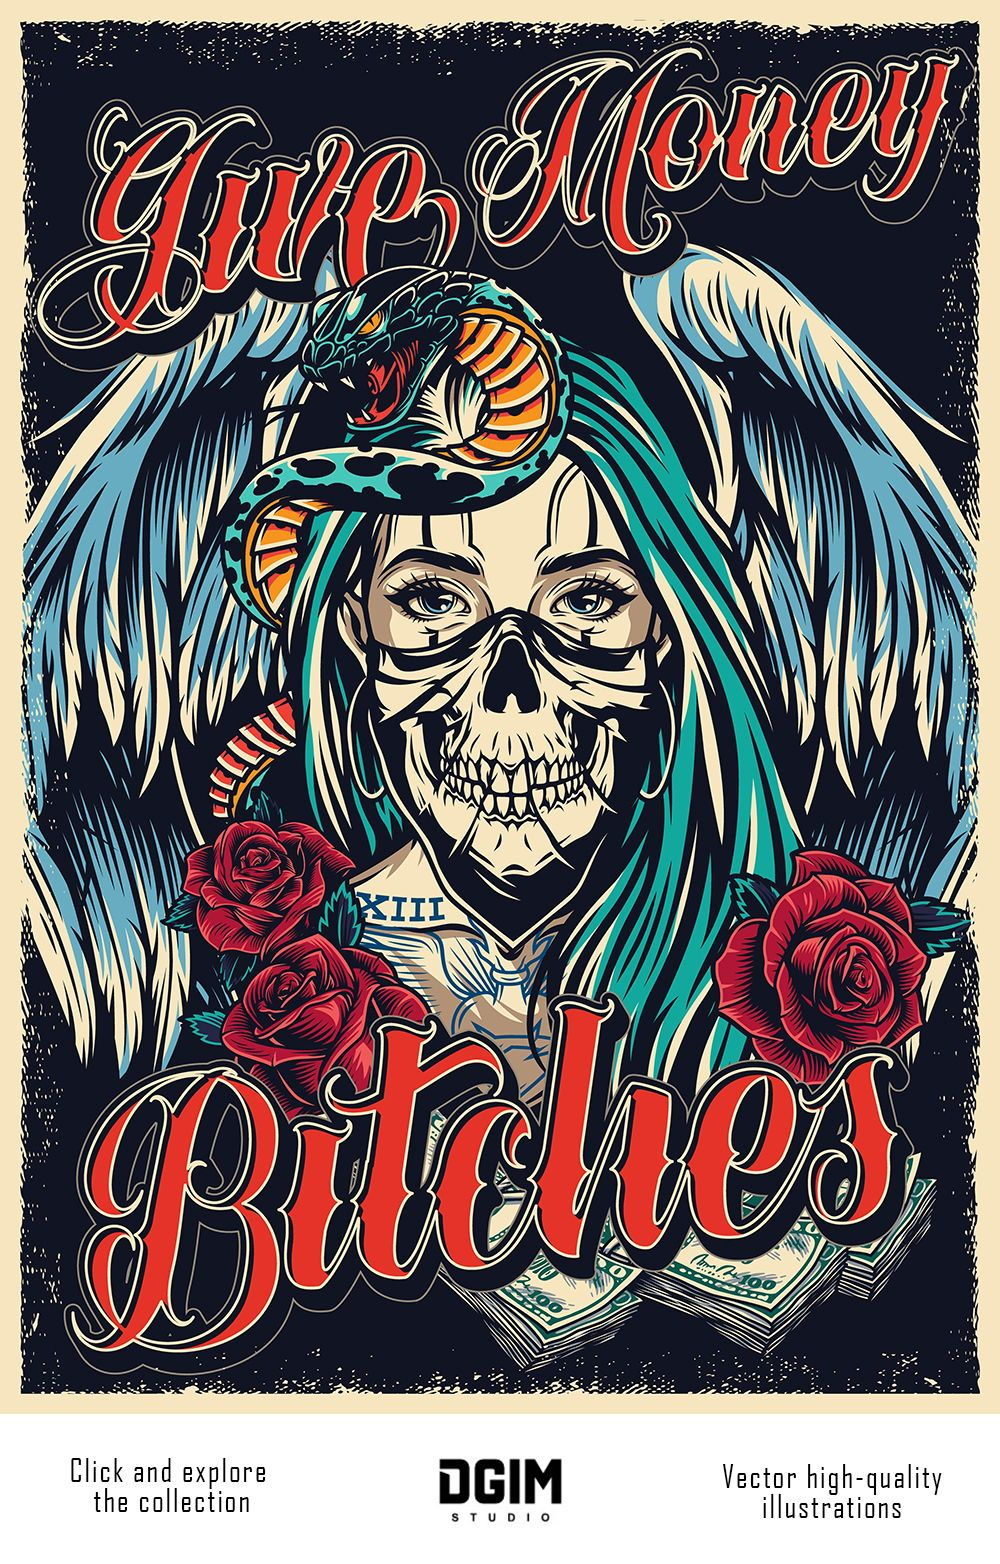 60 Chicano Vector Designs In 2020 Tattoo Posters Chicano Vector Design